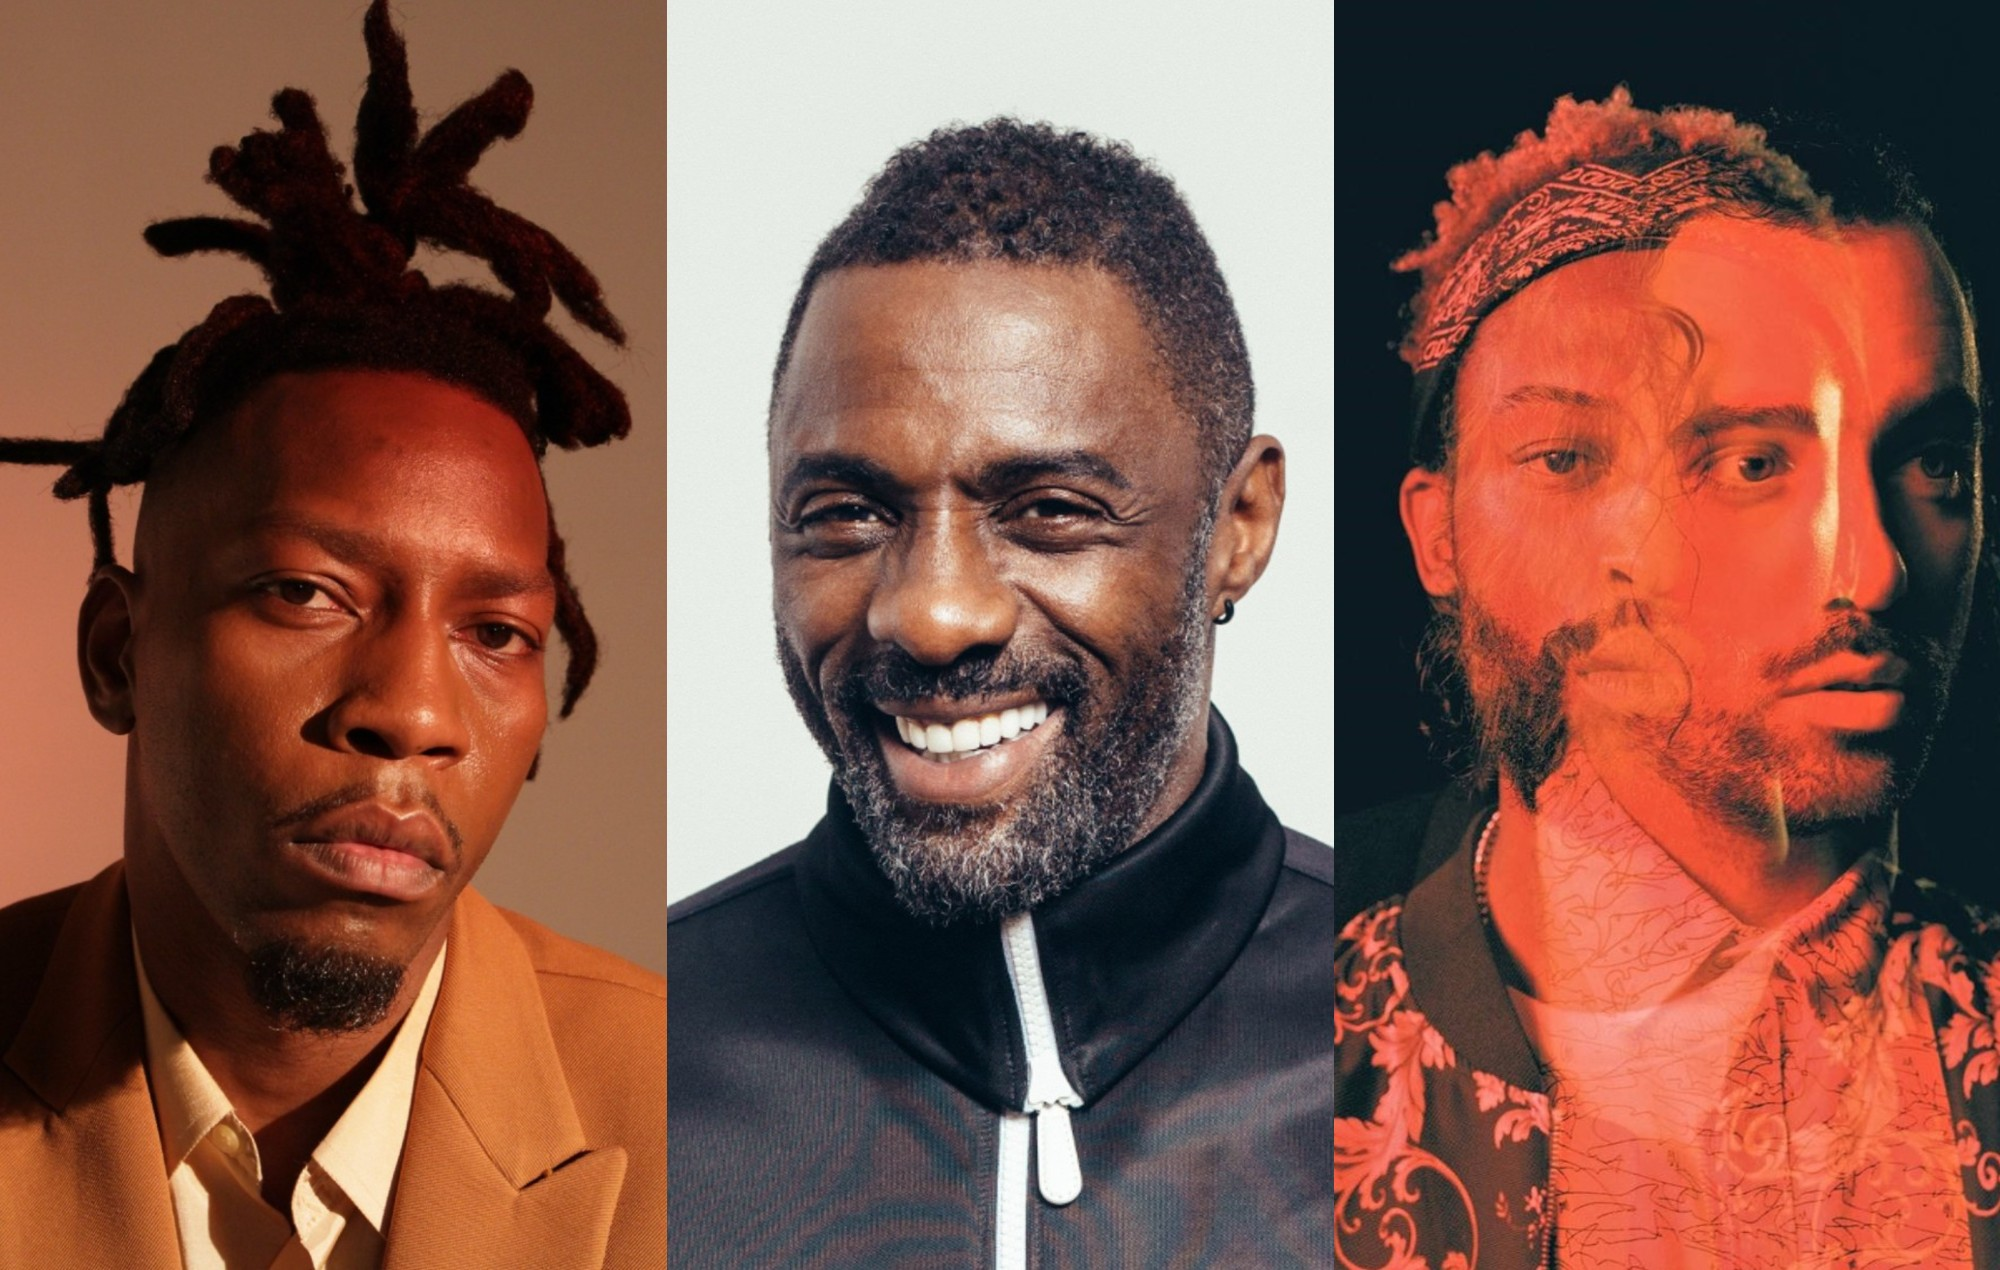 Idris Elba teams up with The Knocks and Tiggs Da Author for new single 'One Fine Day'